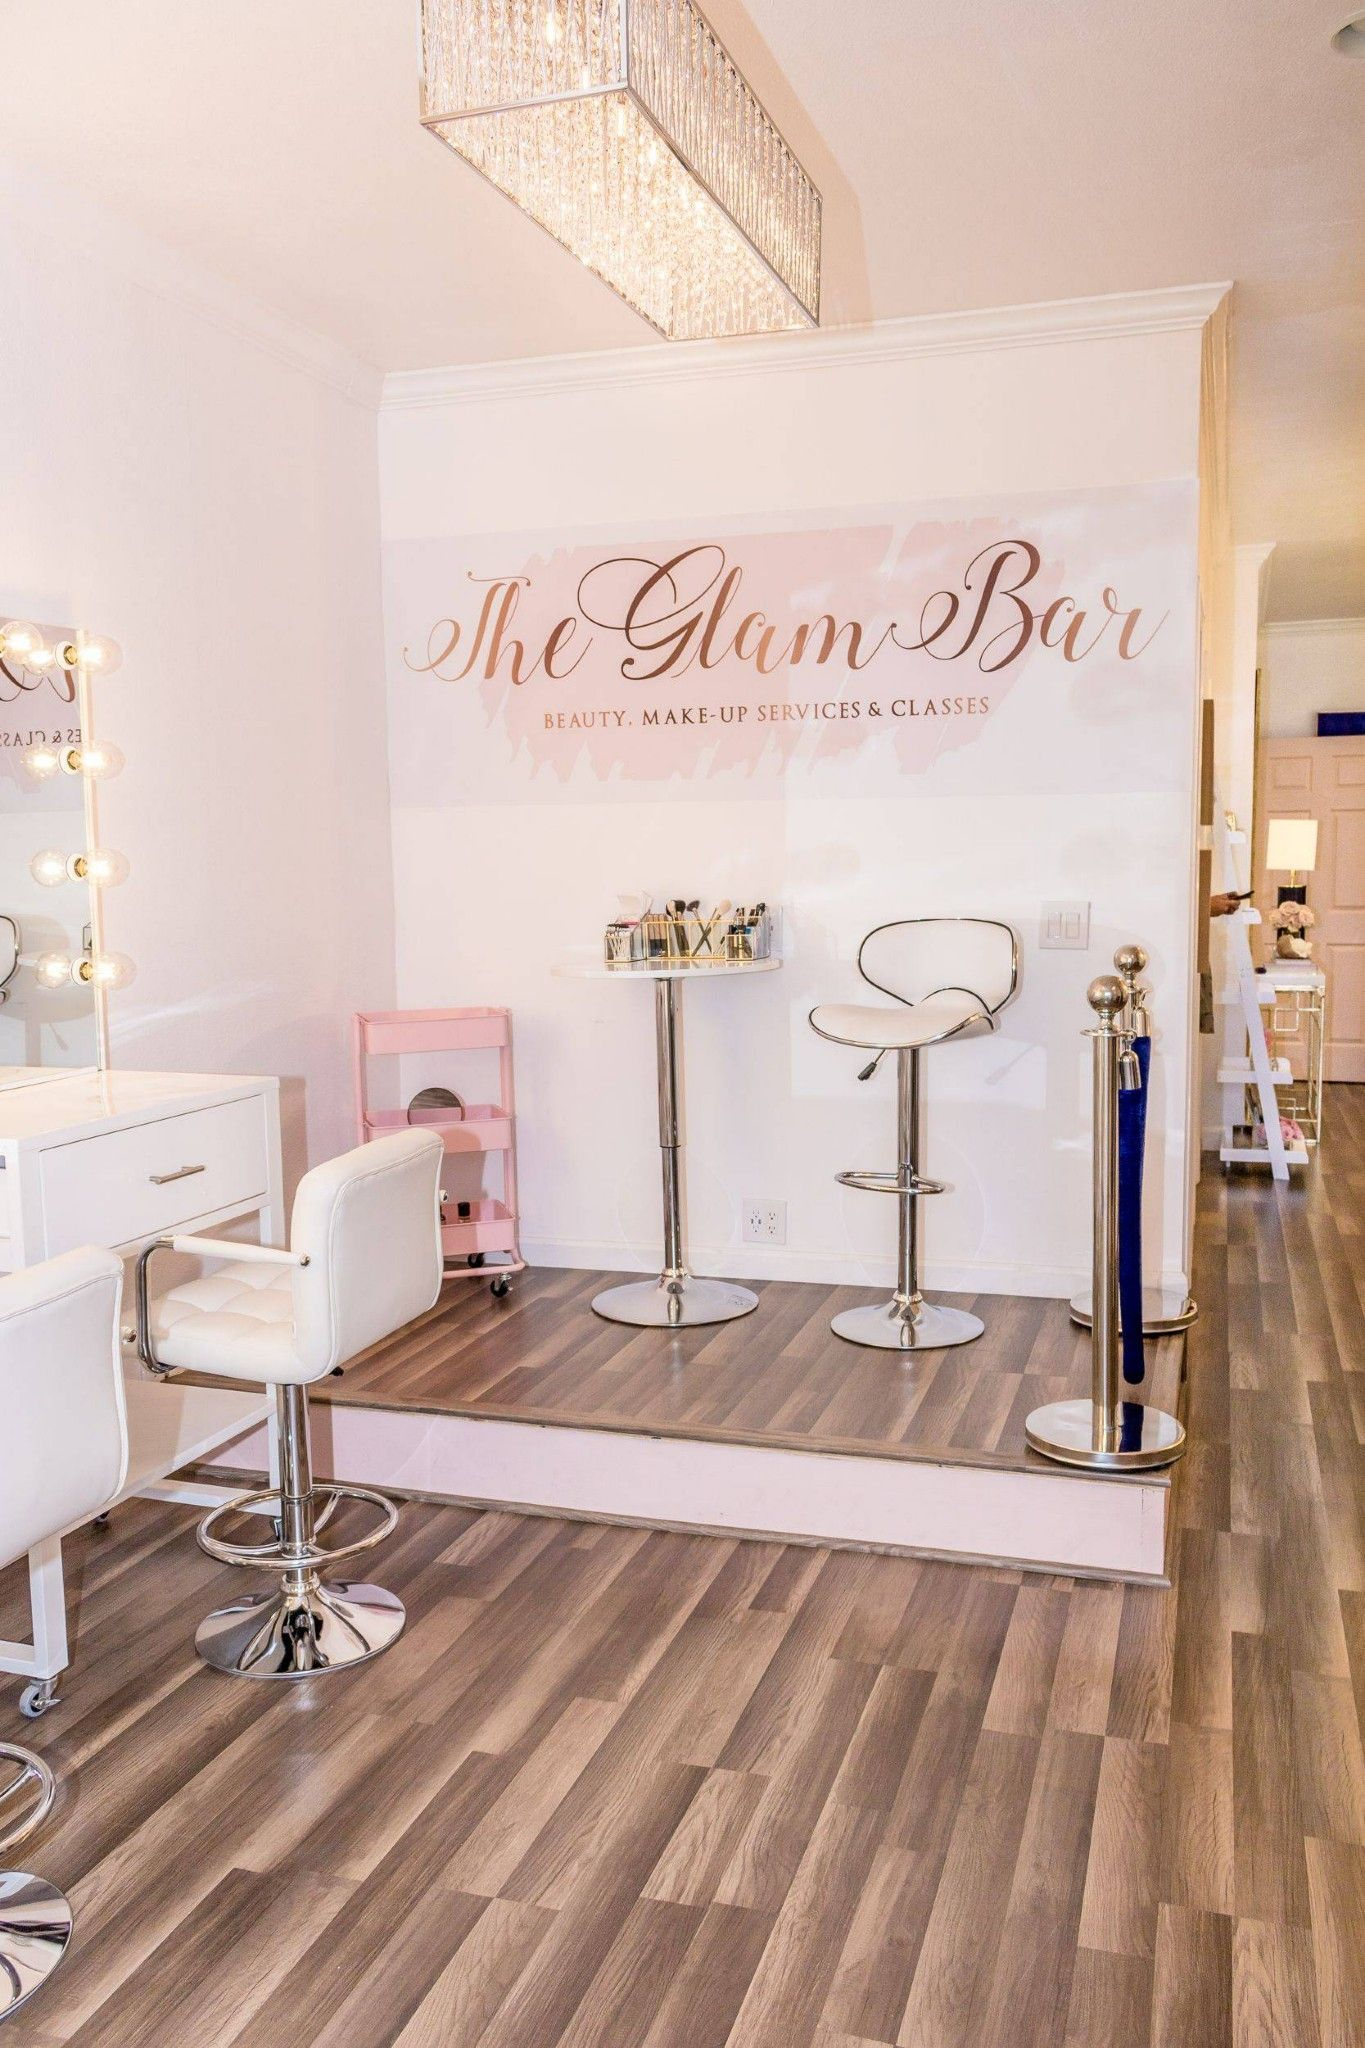 photos of hair salon interior design #modern salon interior design